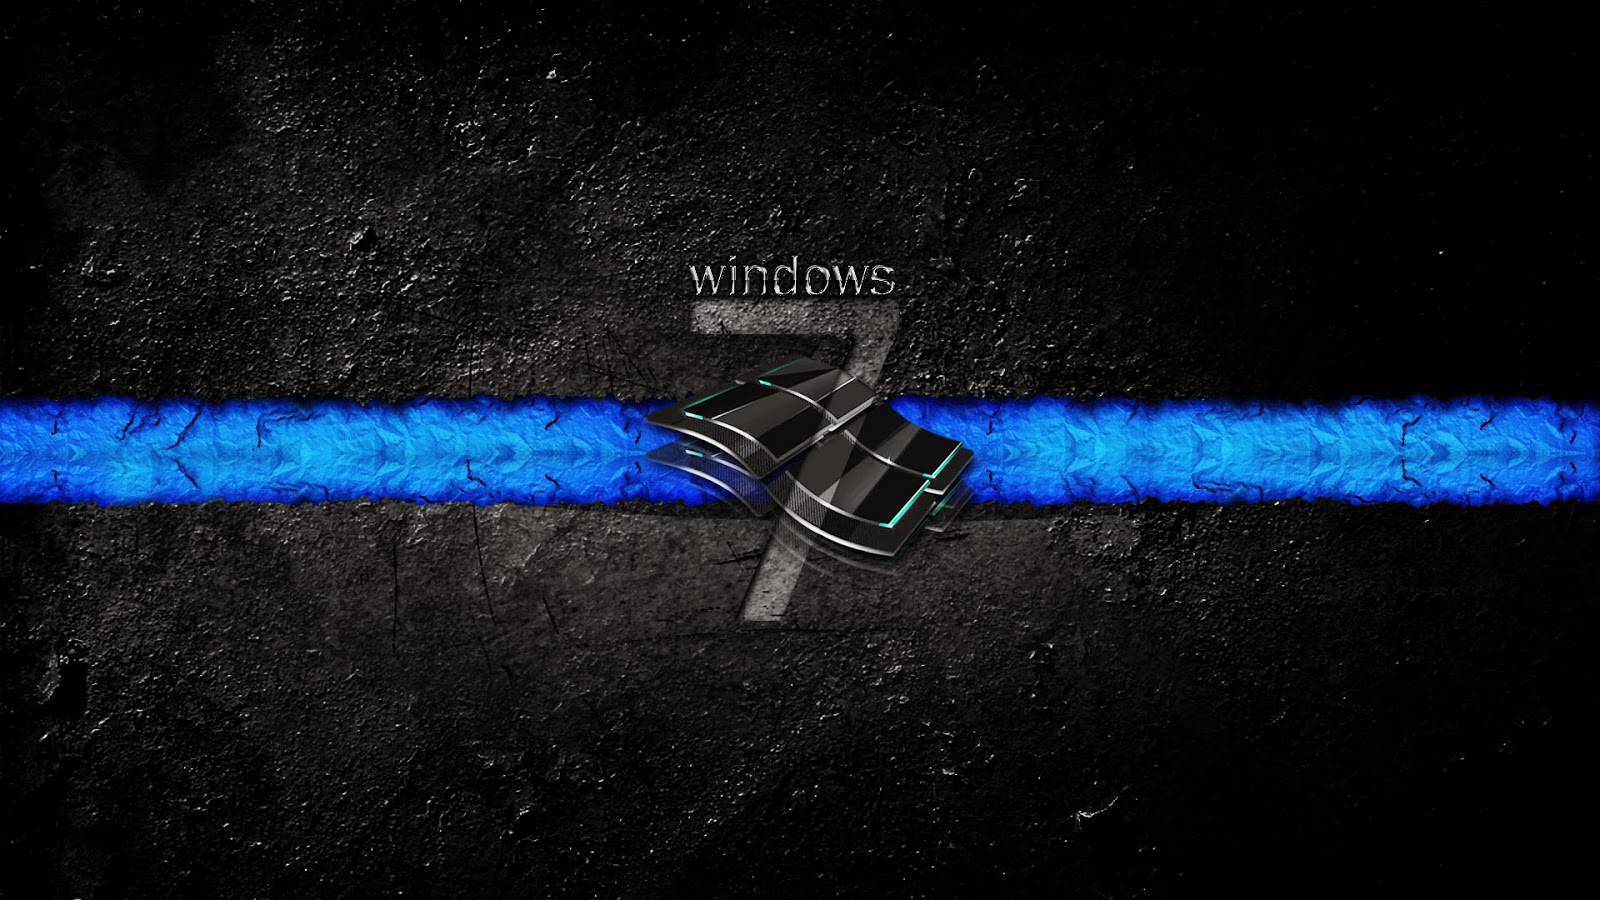 hdwallpapers1080pwindows71920x1080  016jpg 1600x900